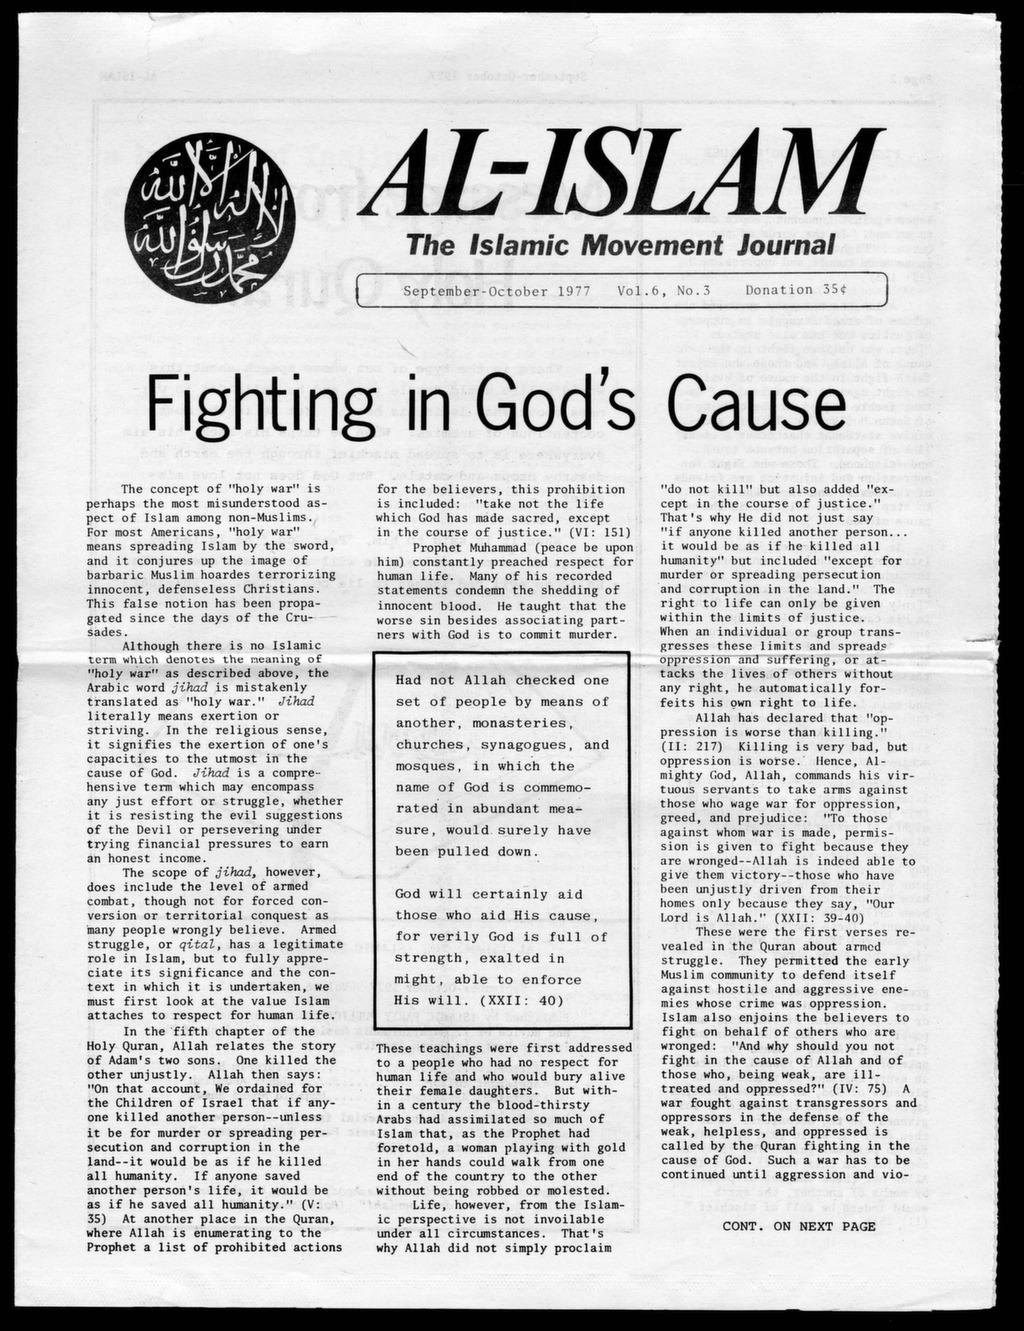 Al-Islam, 1977, Vol  6, No  3, (Sept - Oct ) - After Malcolm